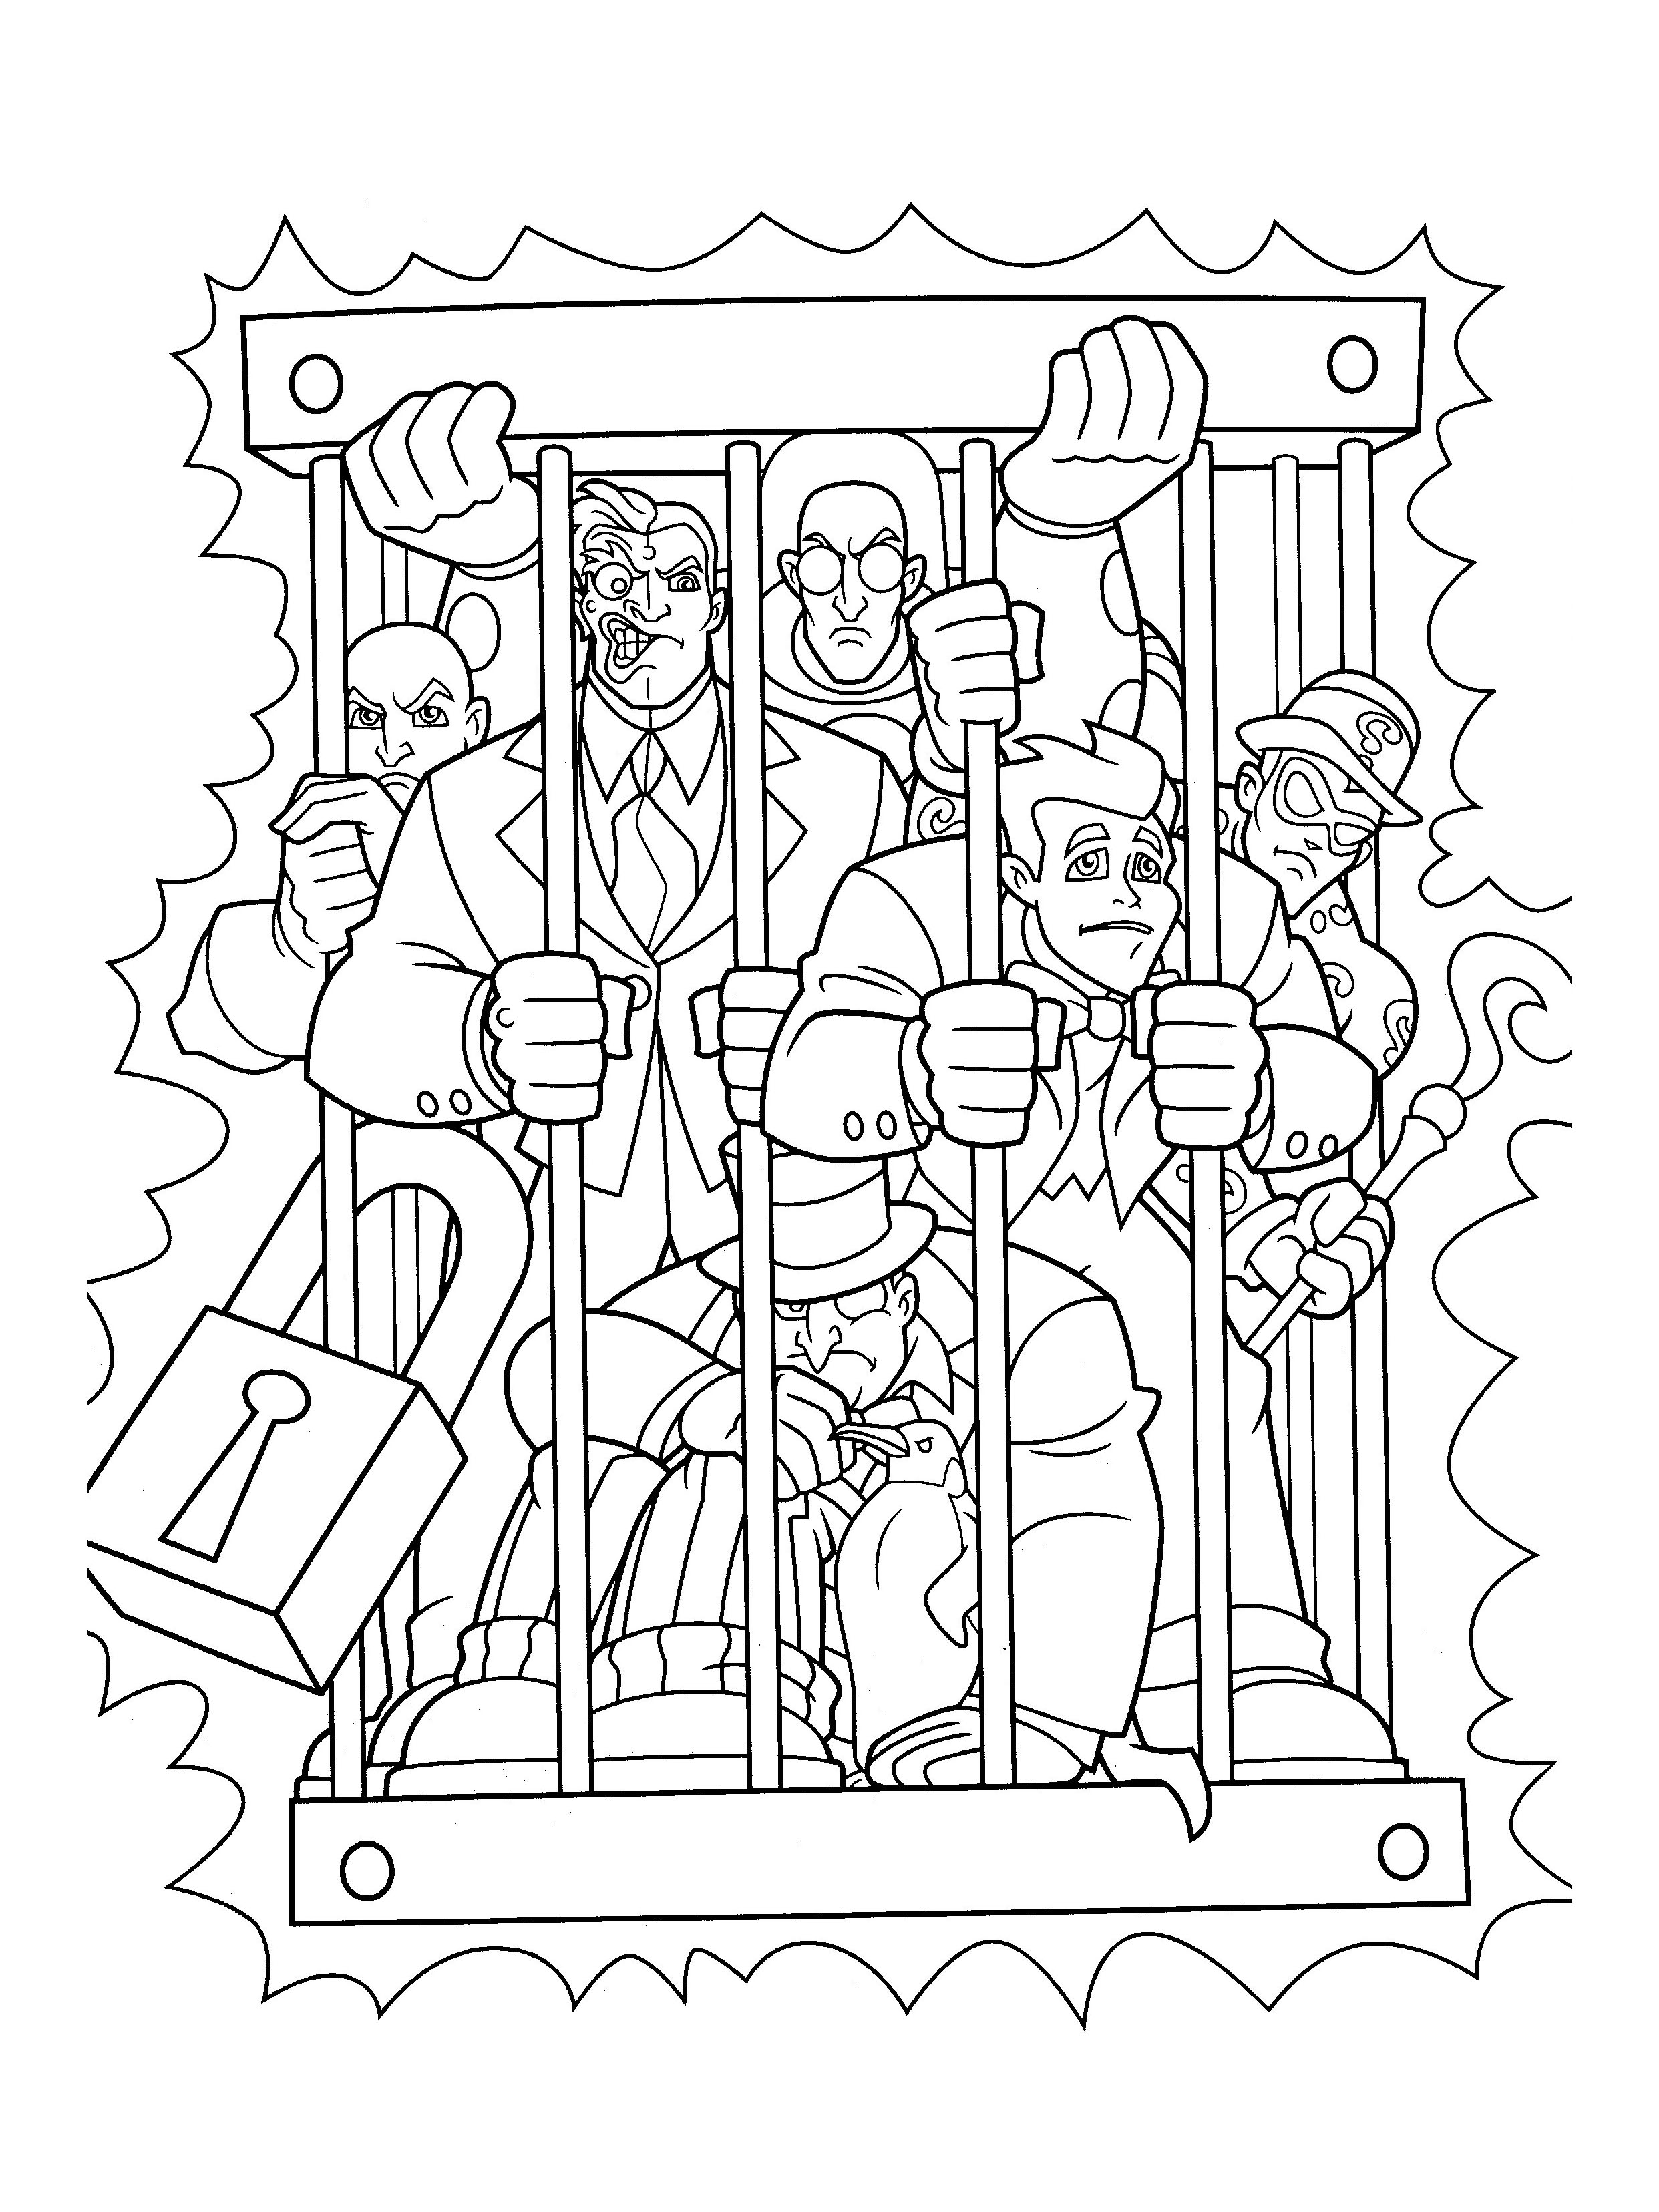 Batman coloring page to download for free